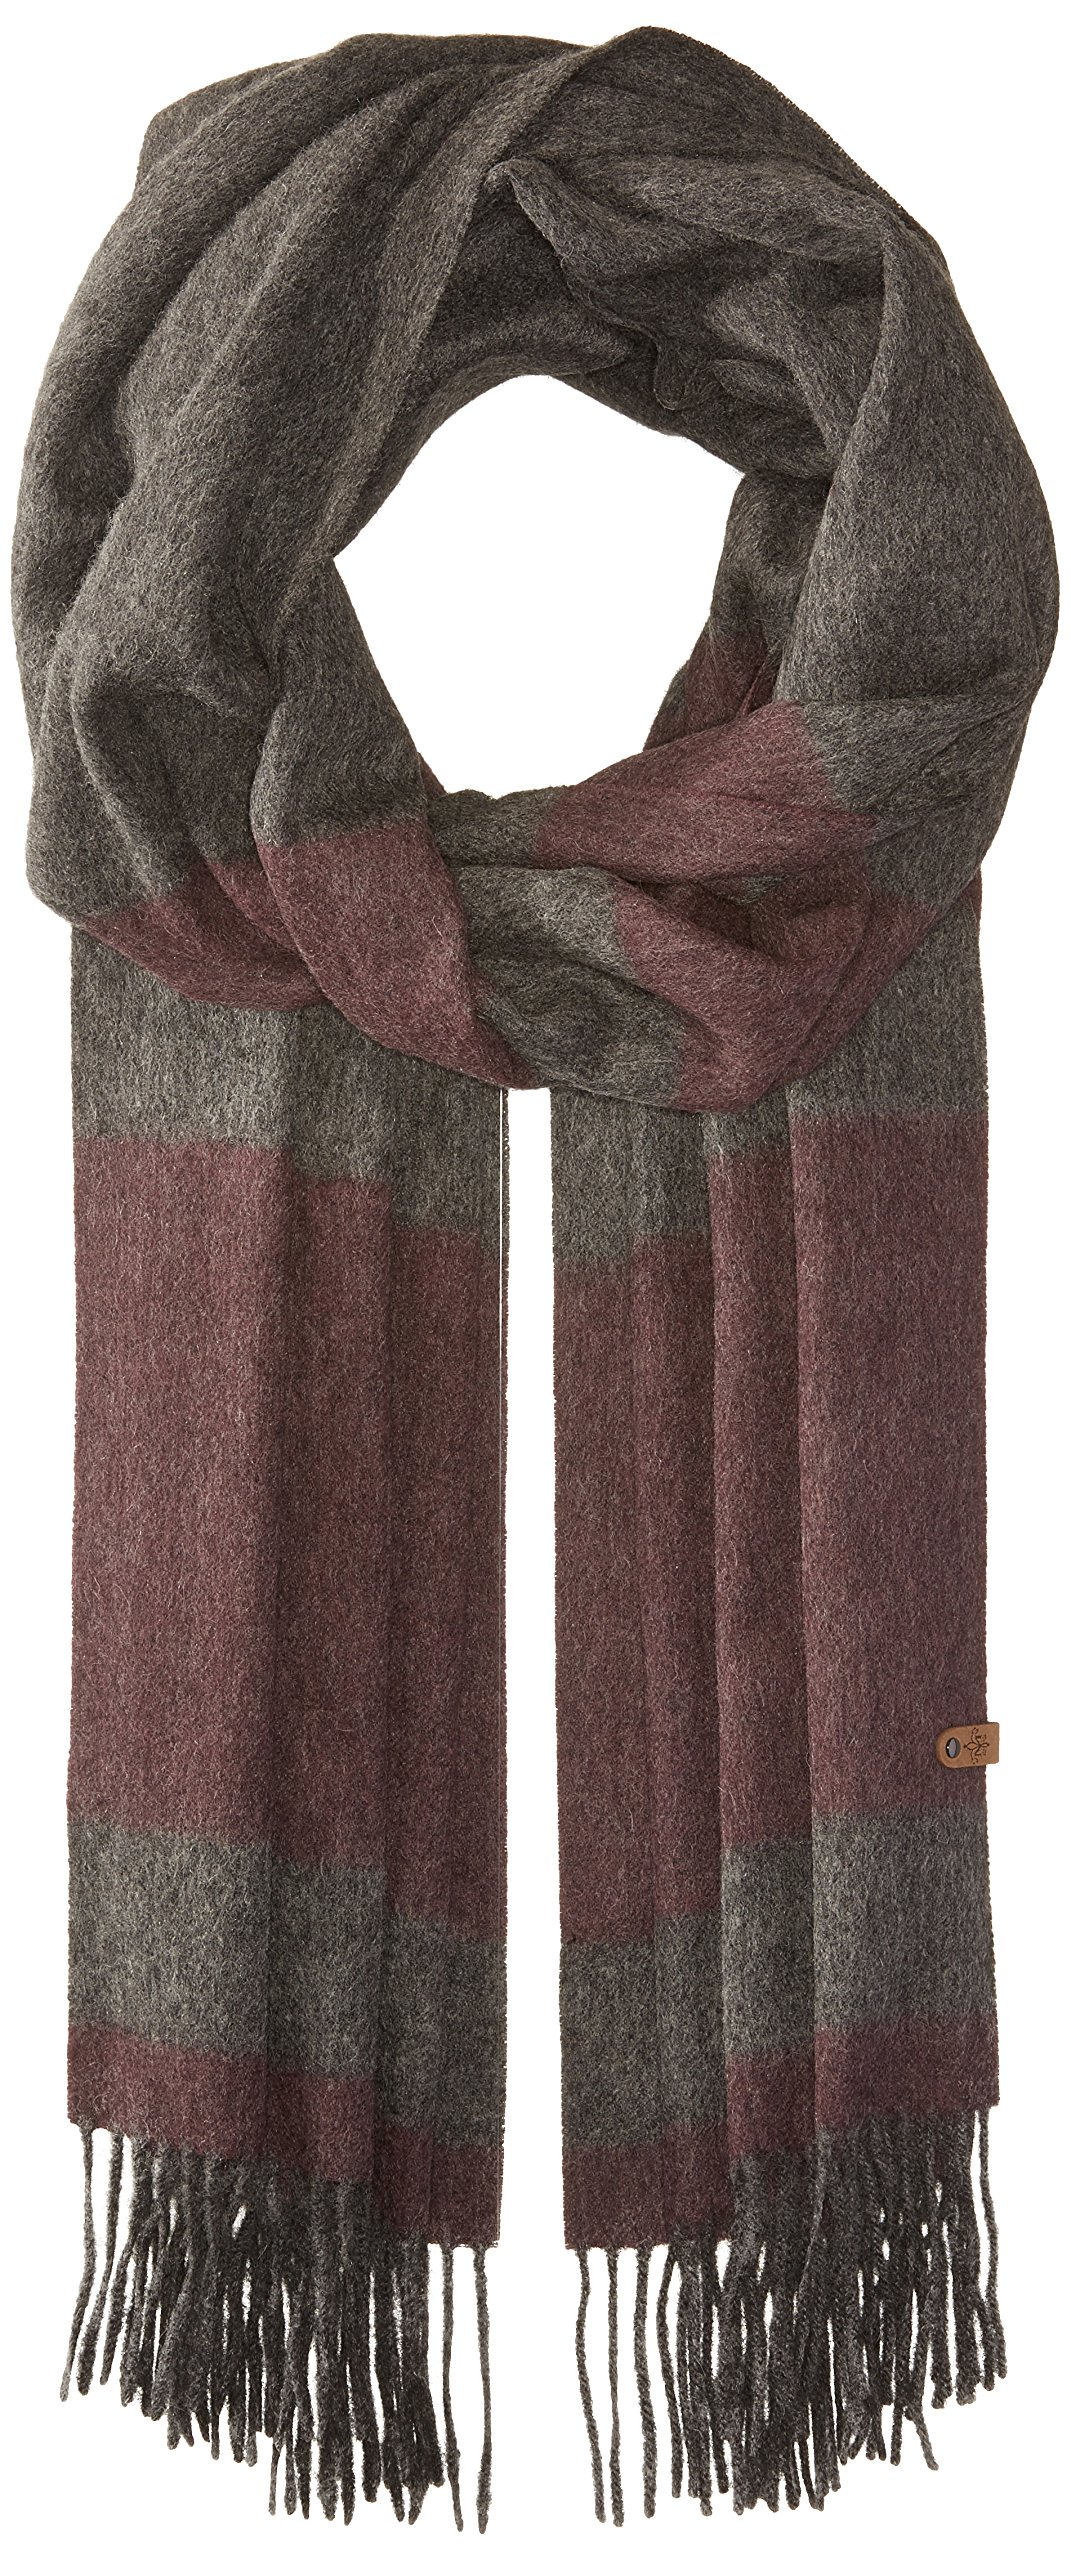 Mackage Women's Lazio Scarf, charcoal/merlot, One Size